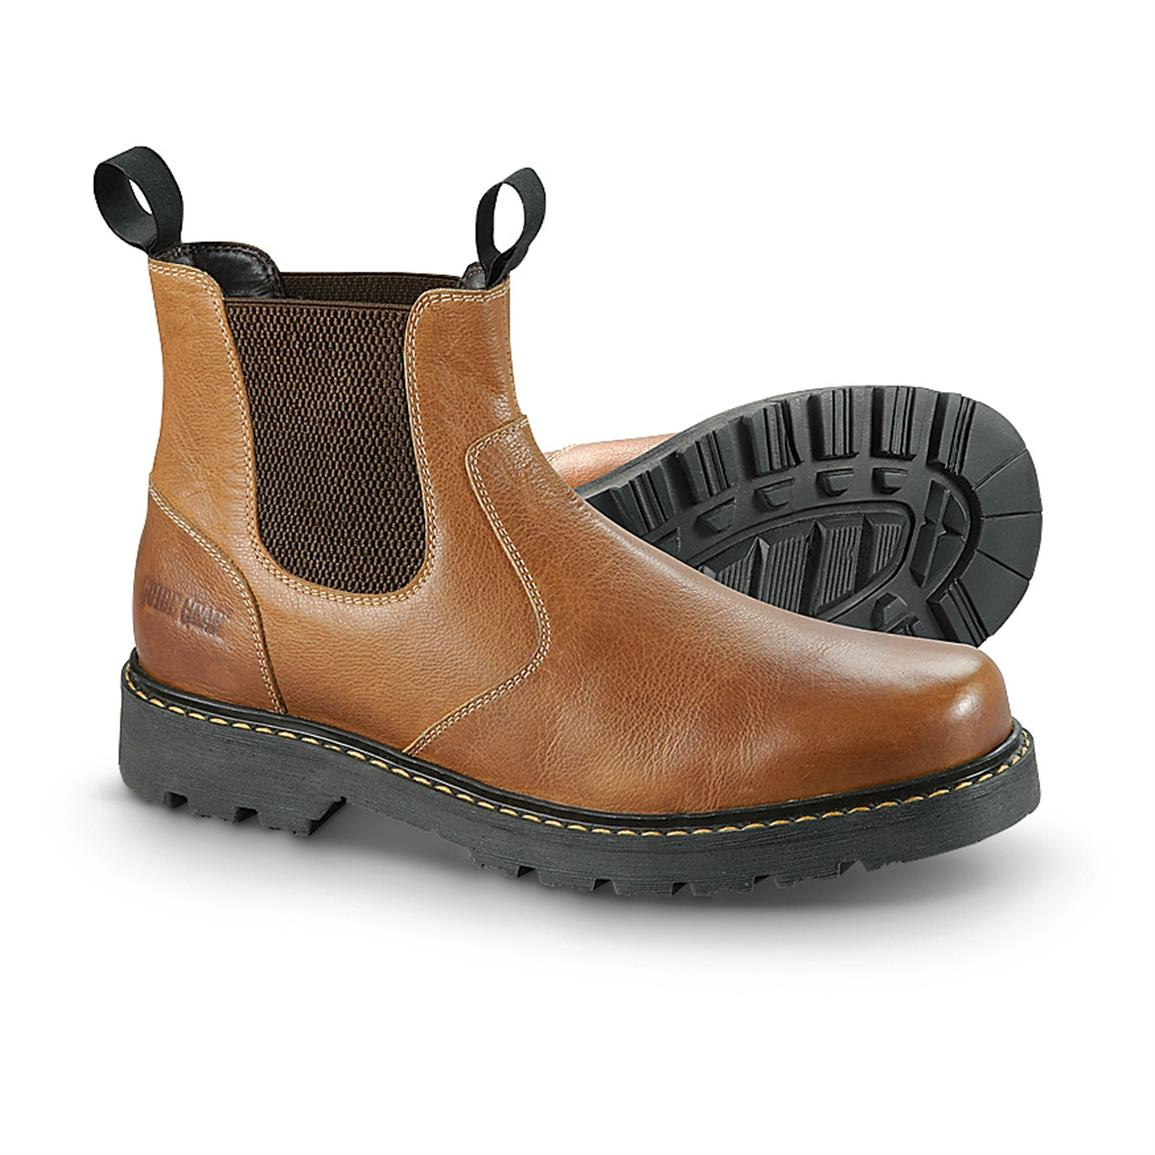 Guide Gear Men's Redrock Romeo Boots • Slip-on easy for quick jaunts into the Great Outdoors!